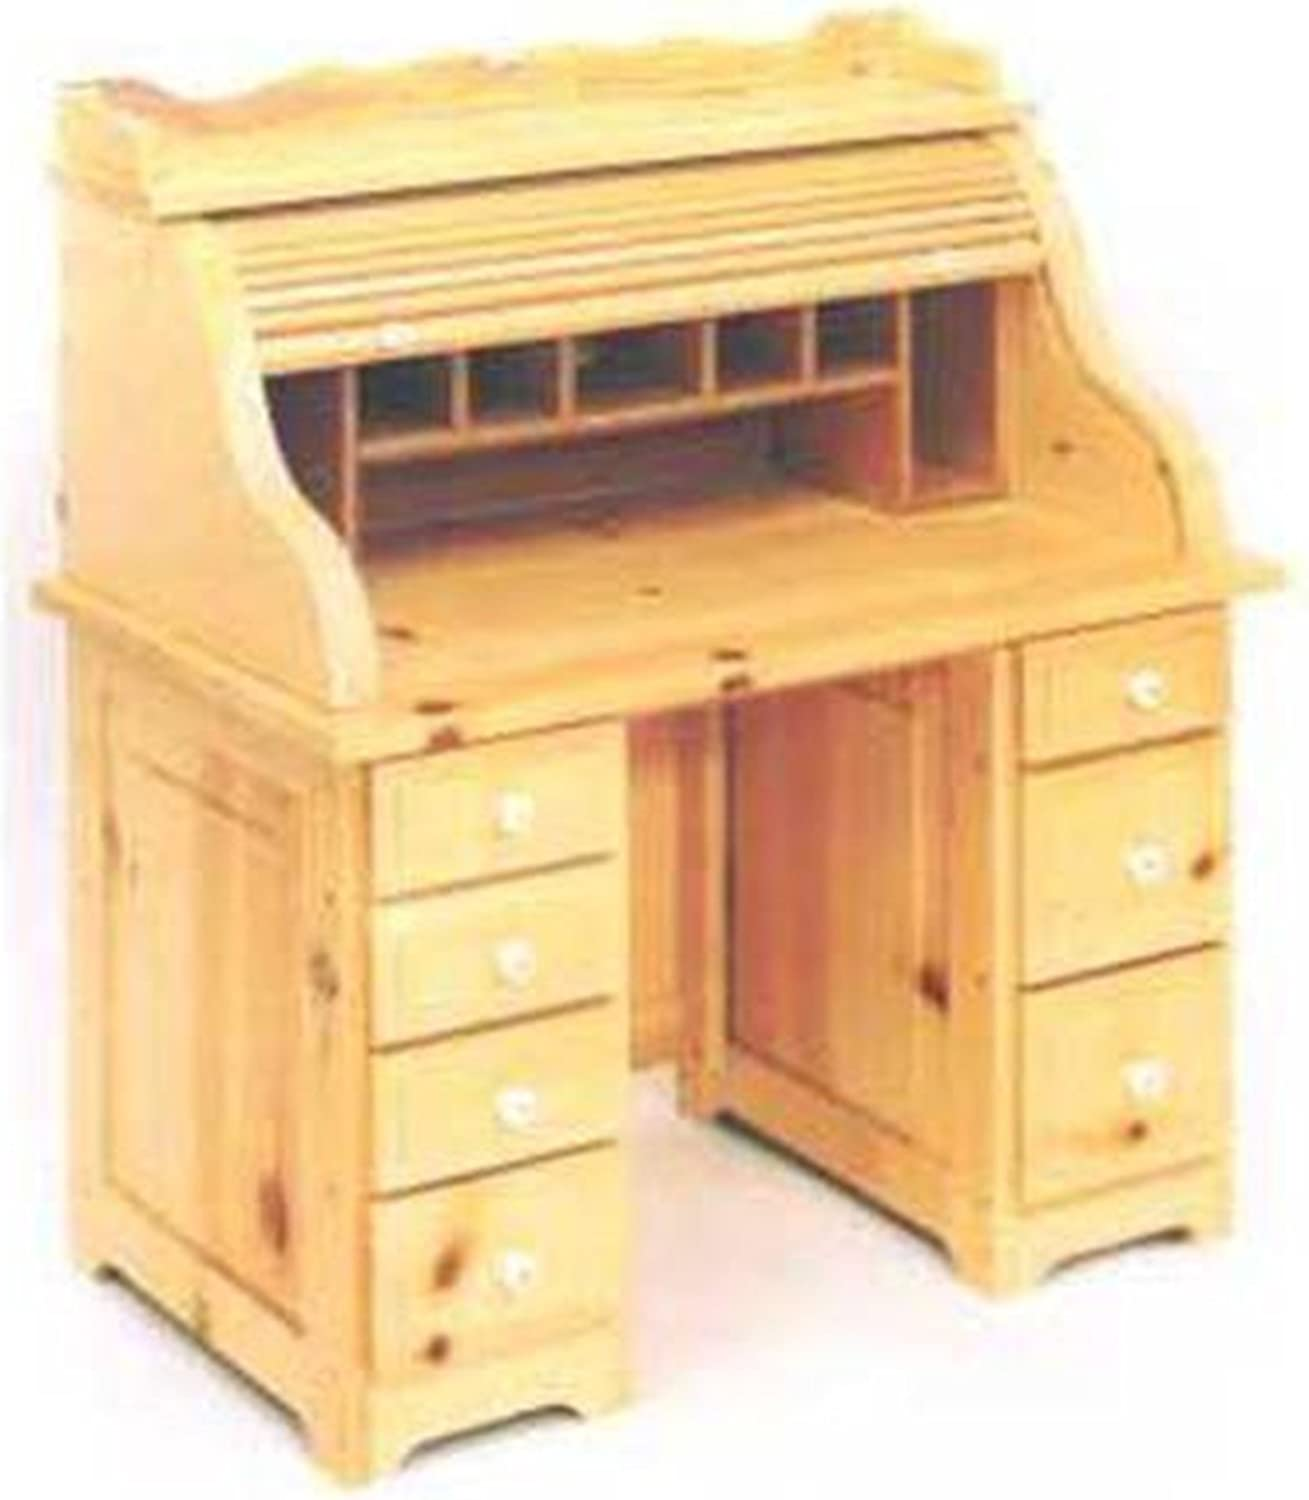 Woodworking Project Paper Plan To Build Child S Roll Top Desk Indoor Furniture Woodworking Project Plans Amazon Com